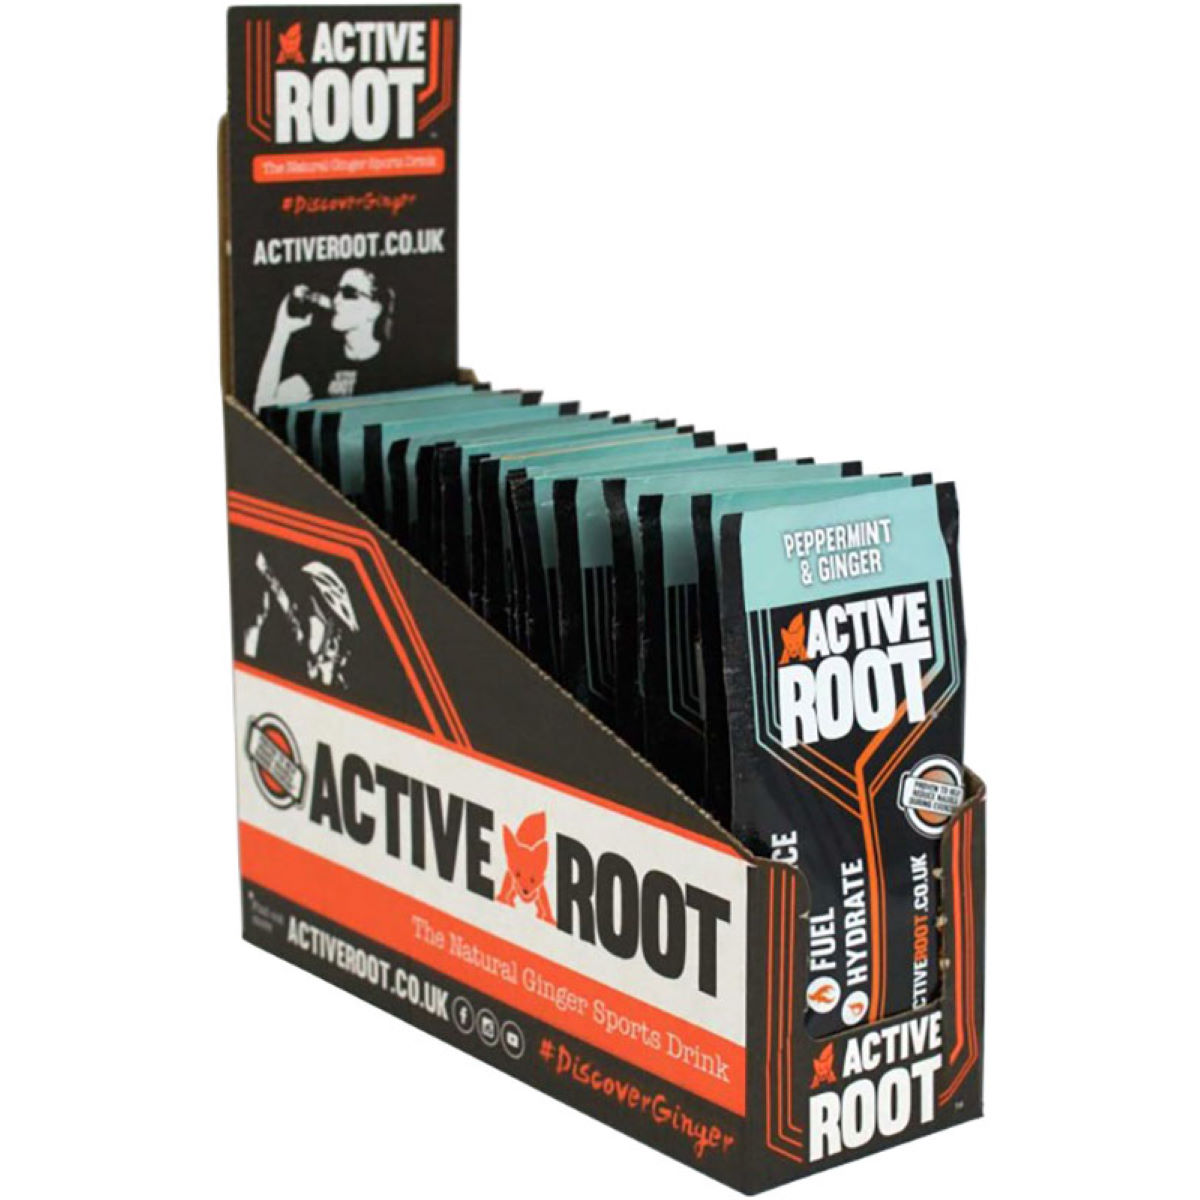 Active Root Active Root 20 Sachet Box (20 x 35g)   Powdered Drinks